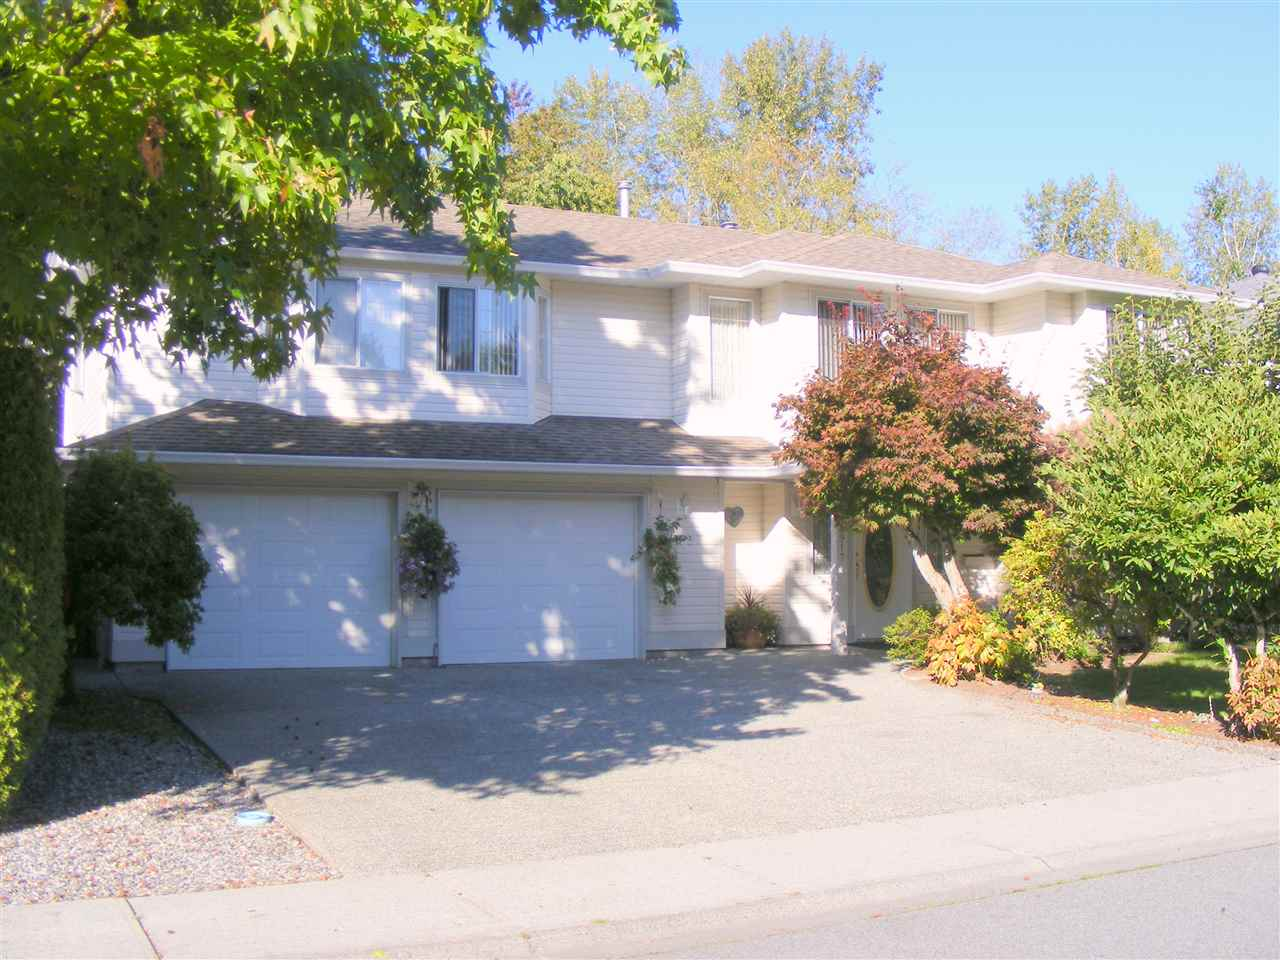 Main Photo: 11917 237TH Street in Maple Ridge: East Central House for sale : MLS®# R2112735